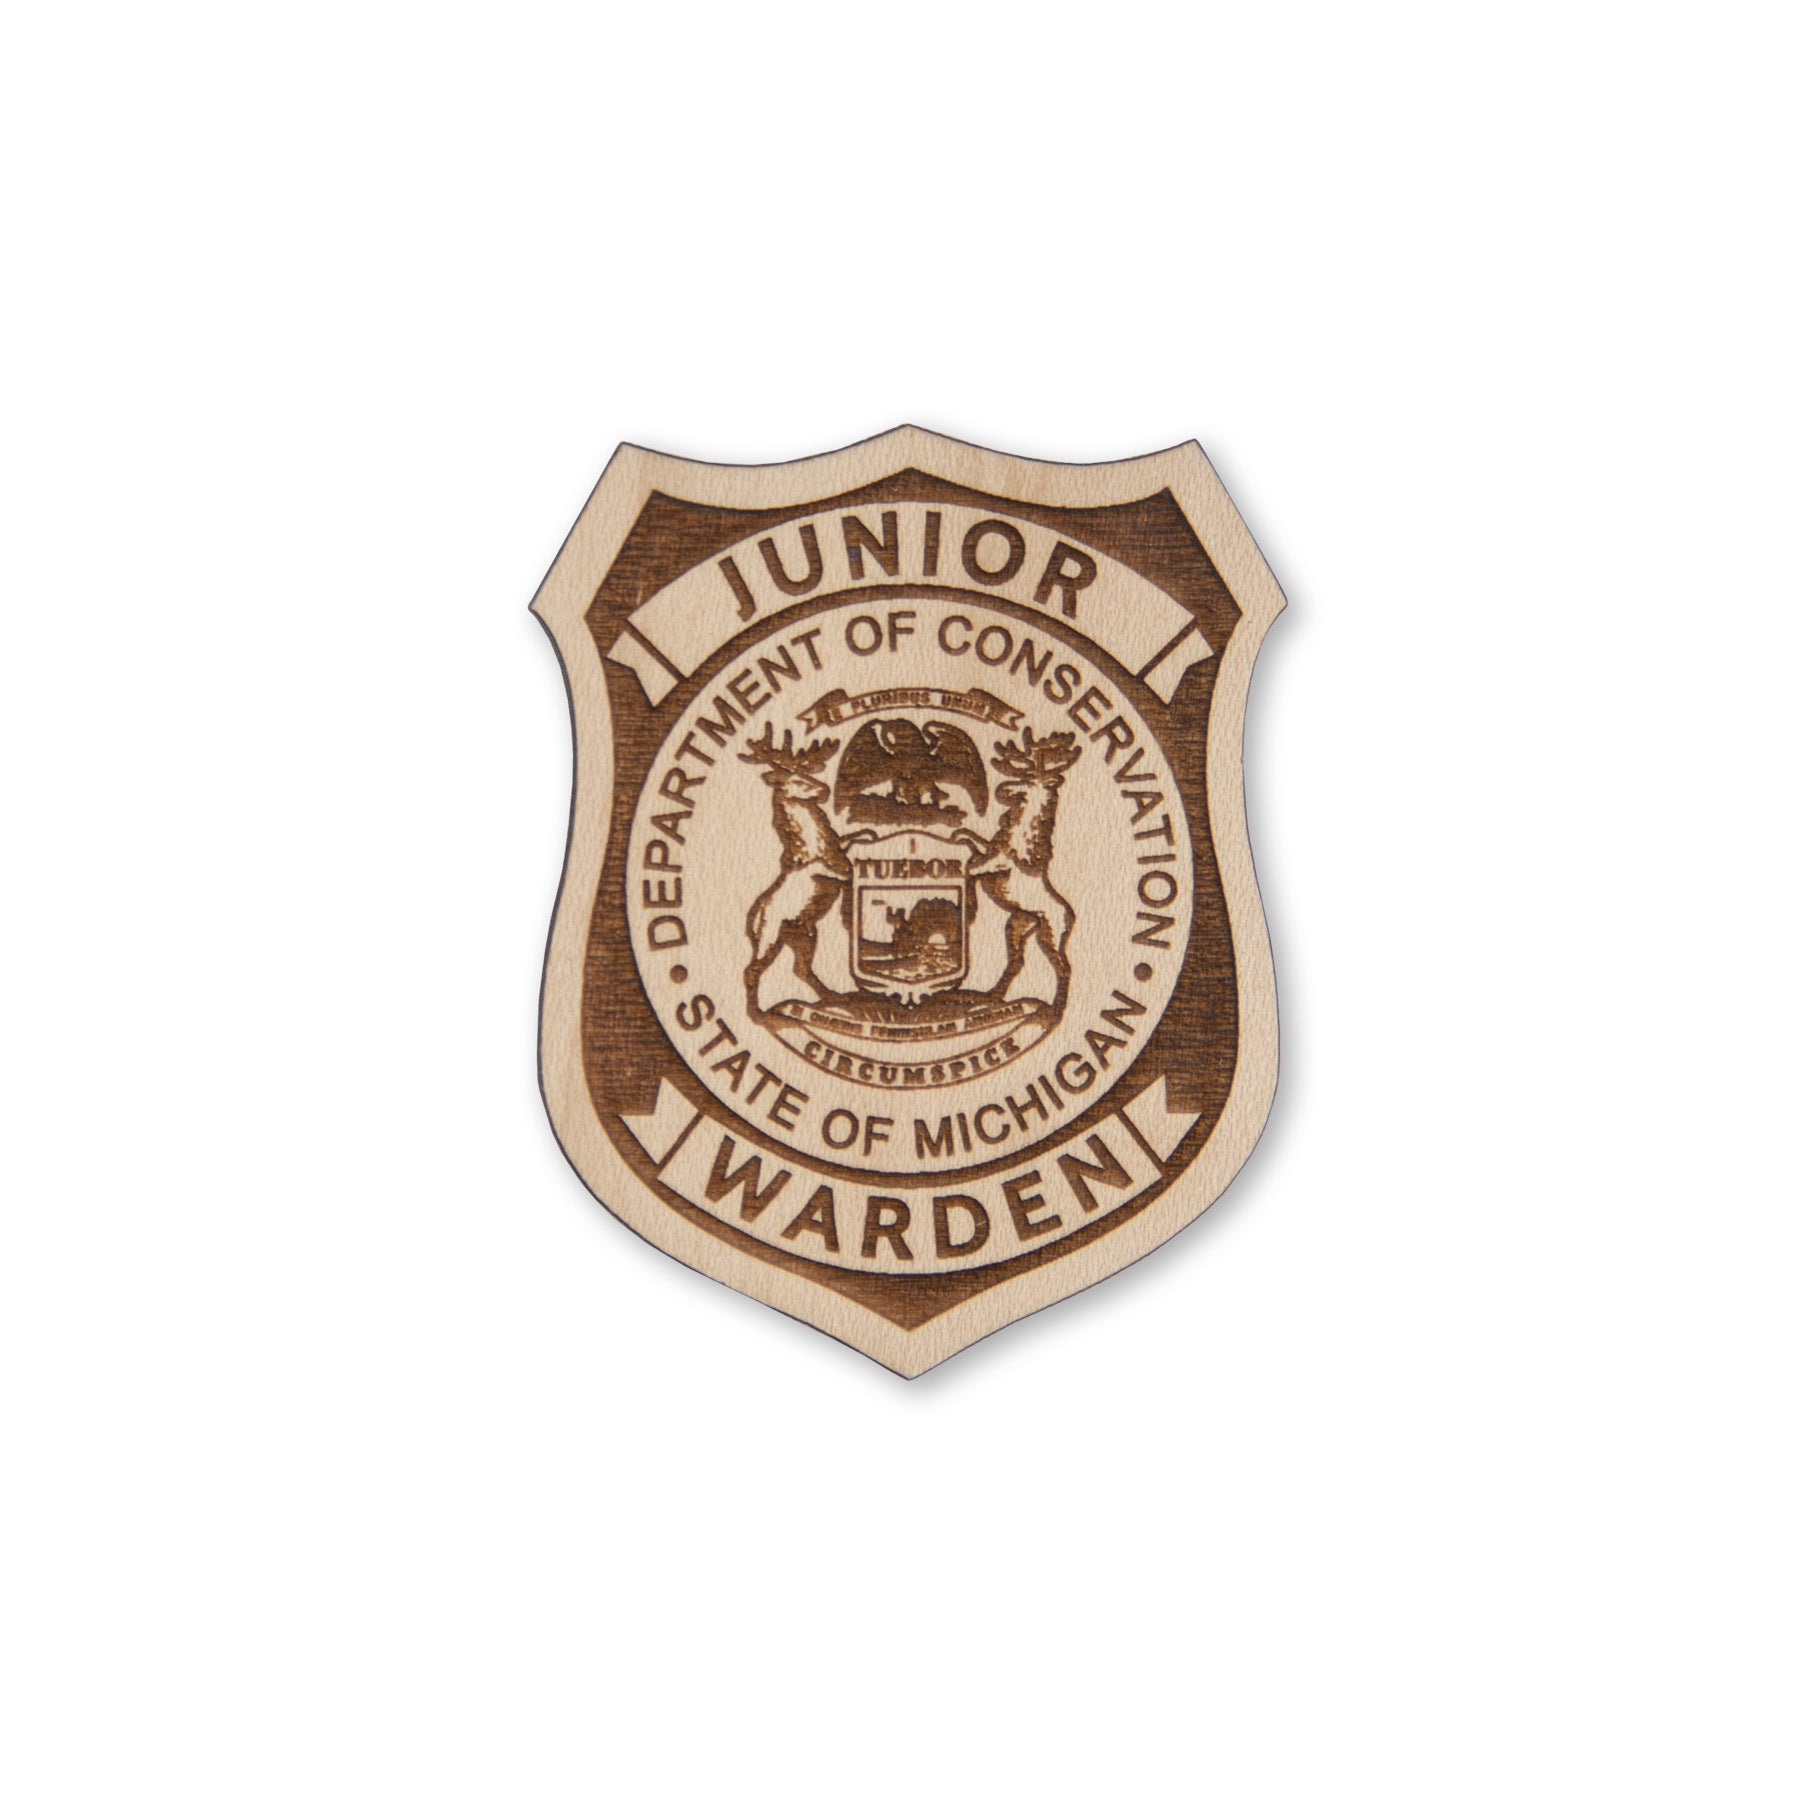 Michigan DNR Centennial Junior Warden Badge